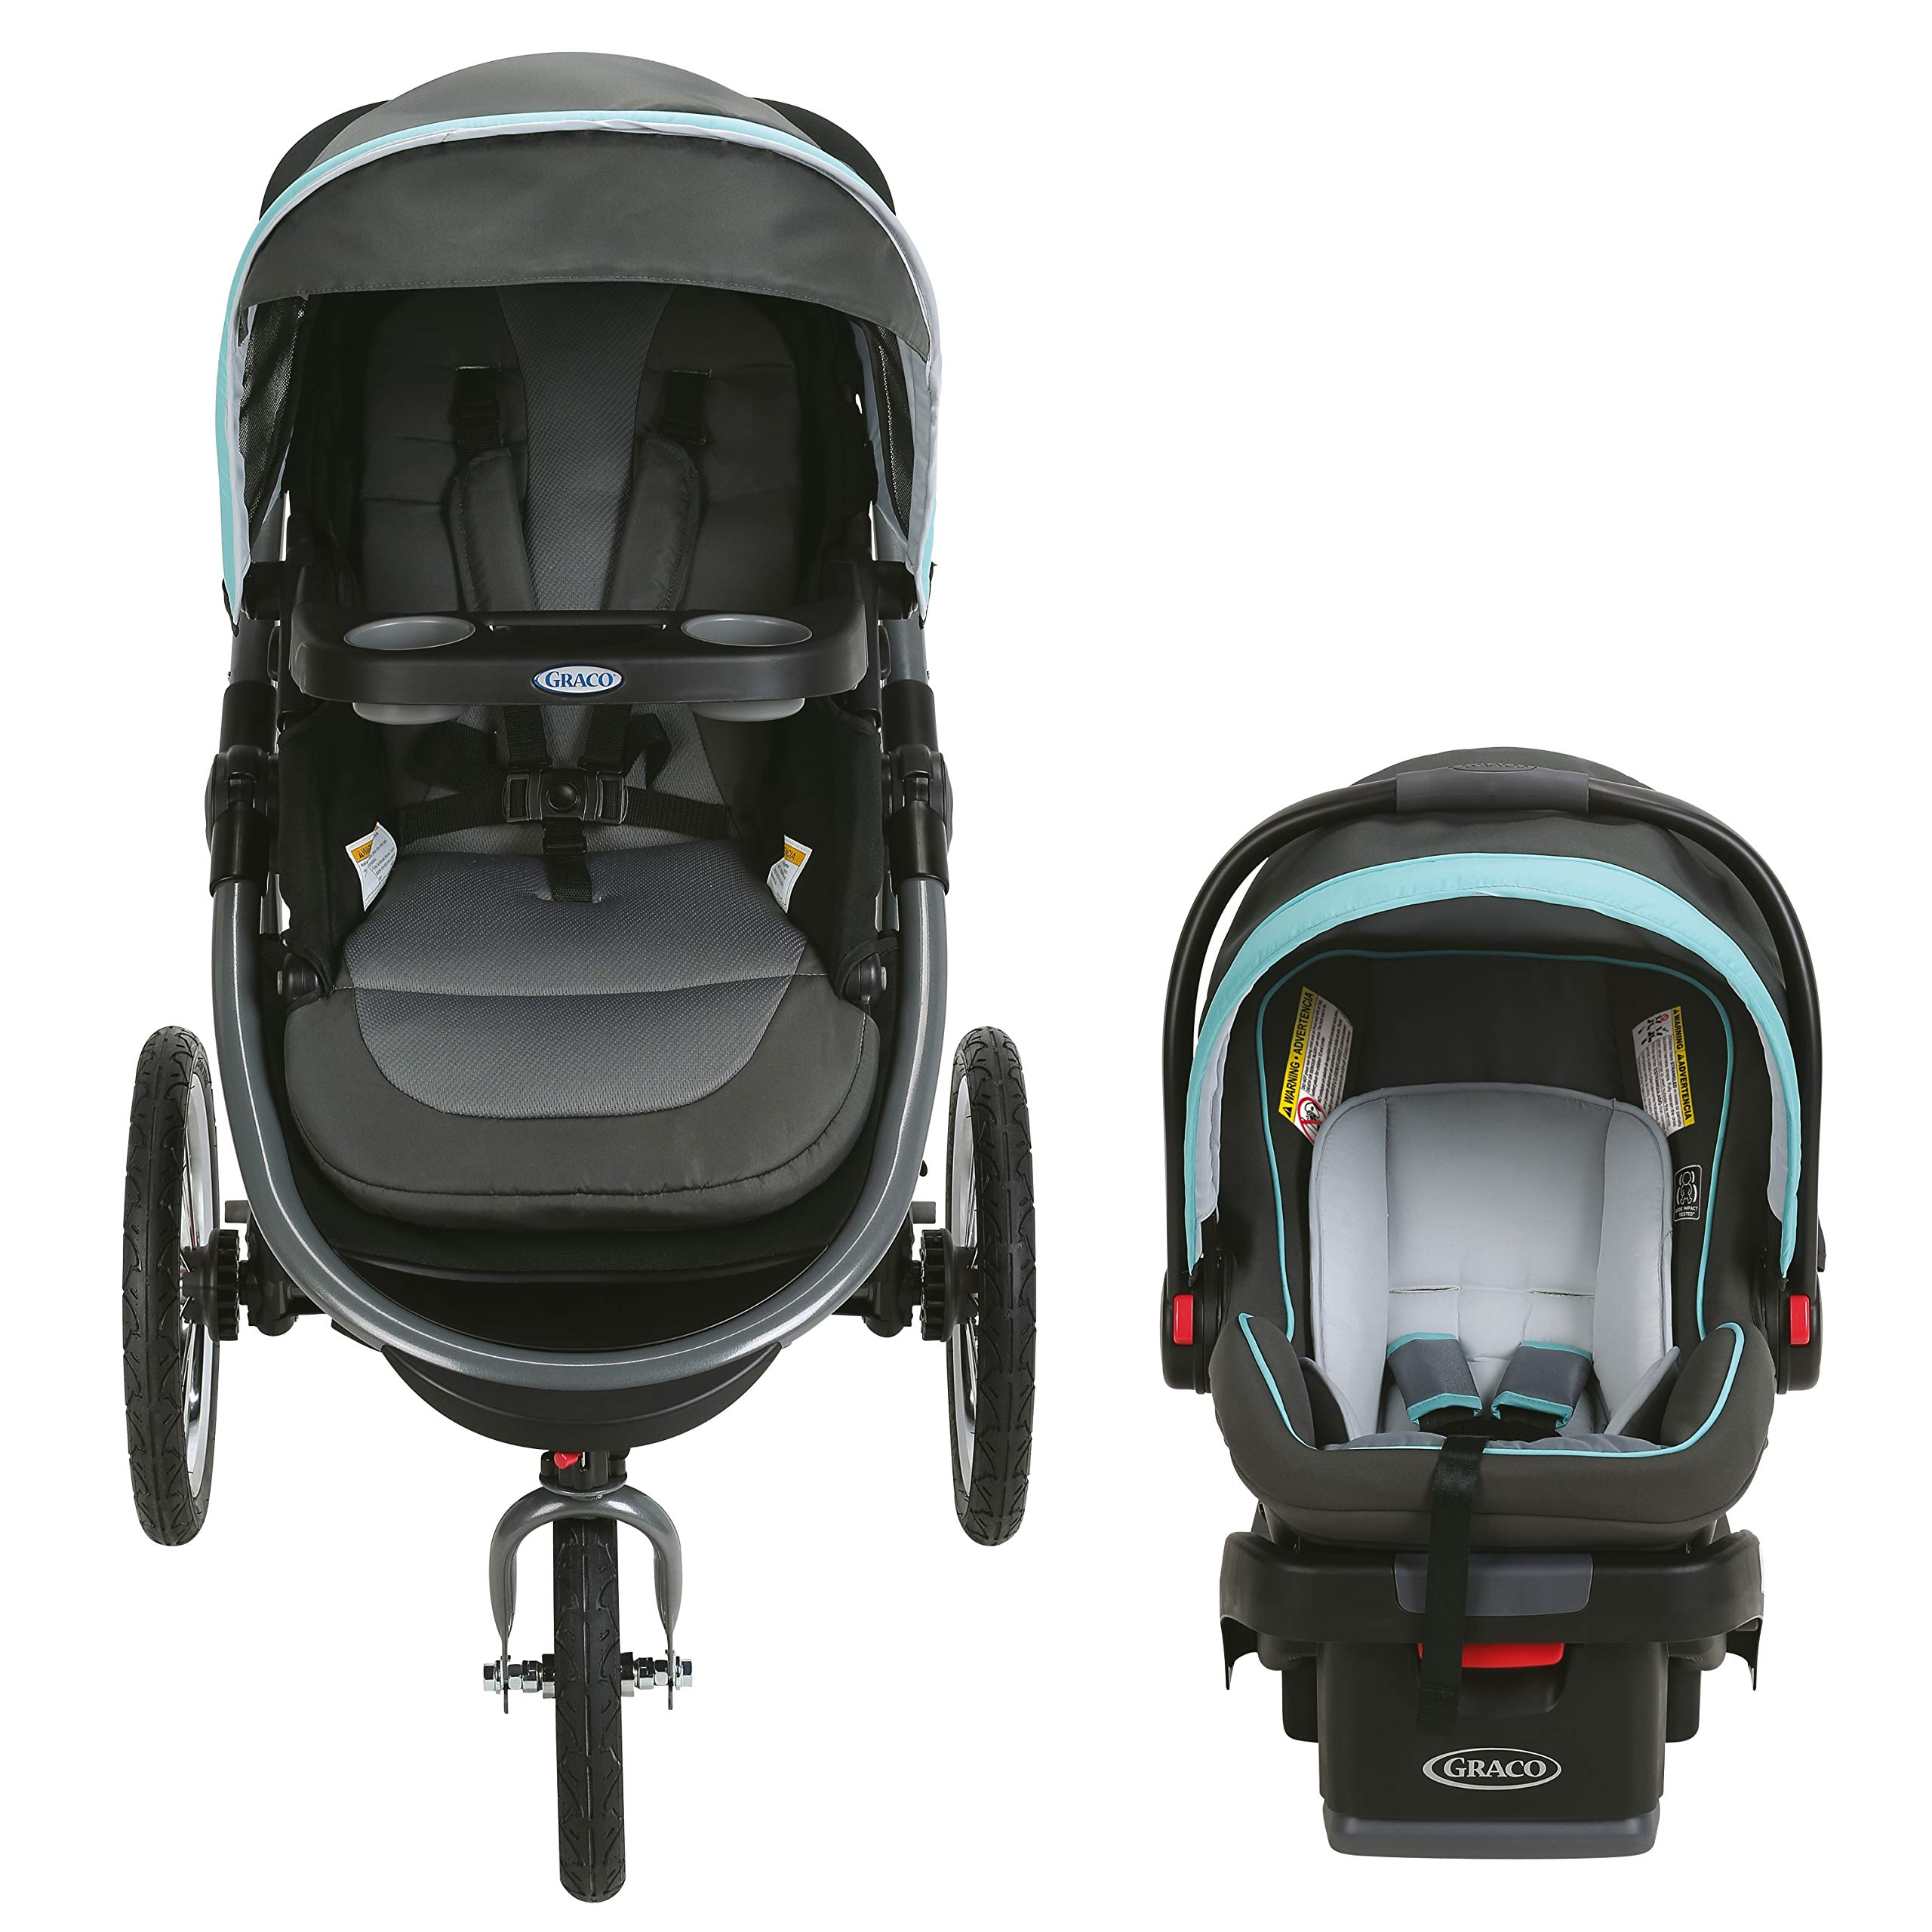 Graco Modes Jogger Travel System Stroller, Tenley by Graco (Image #2)